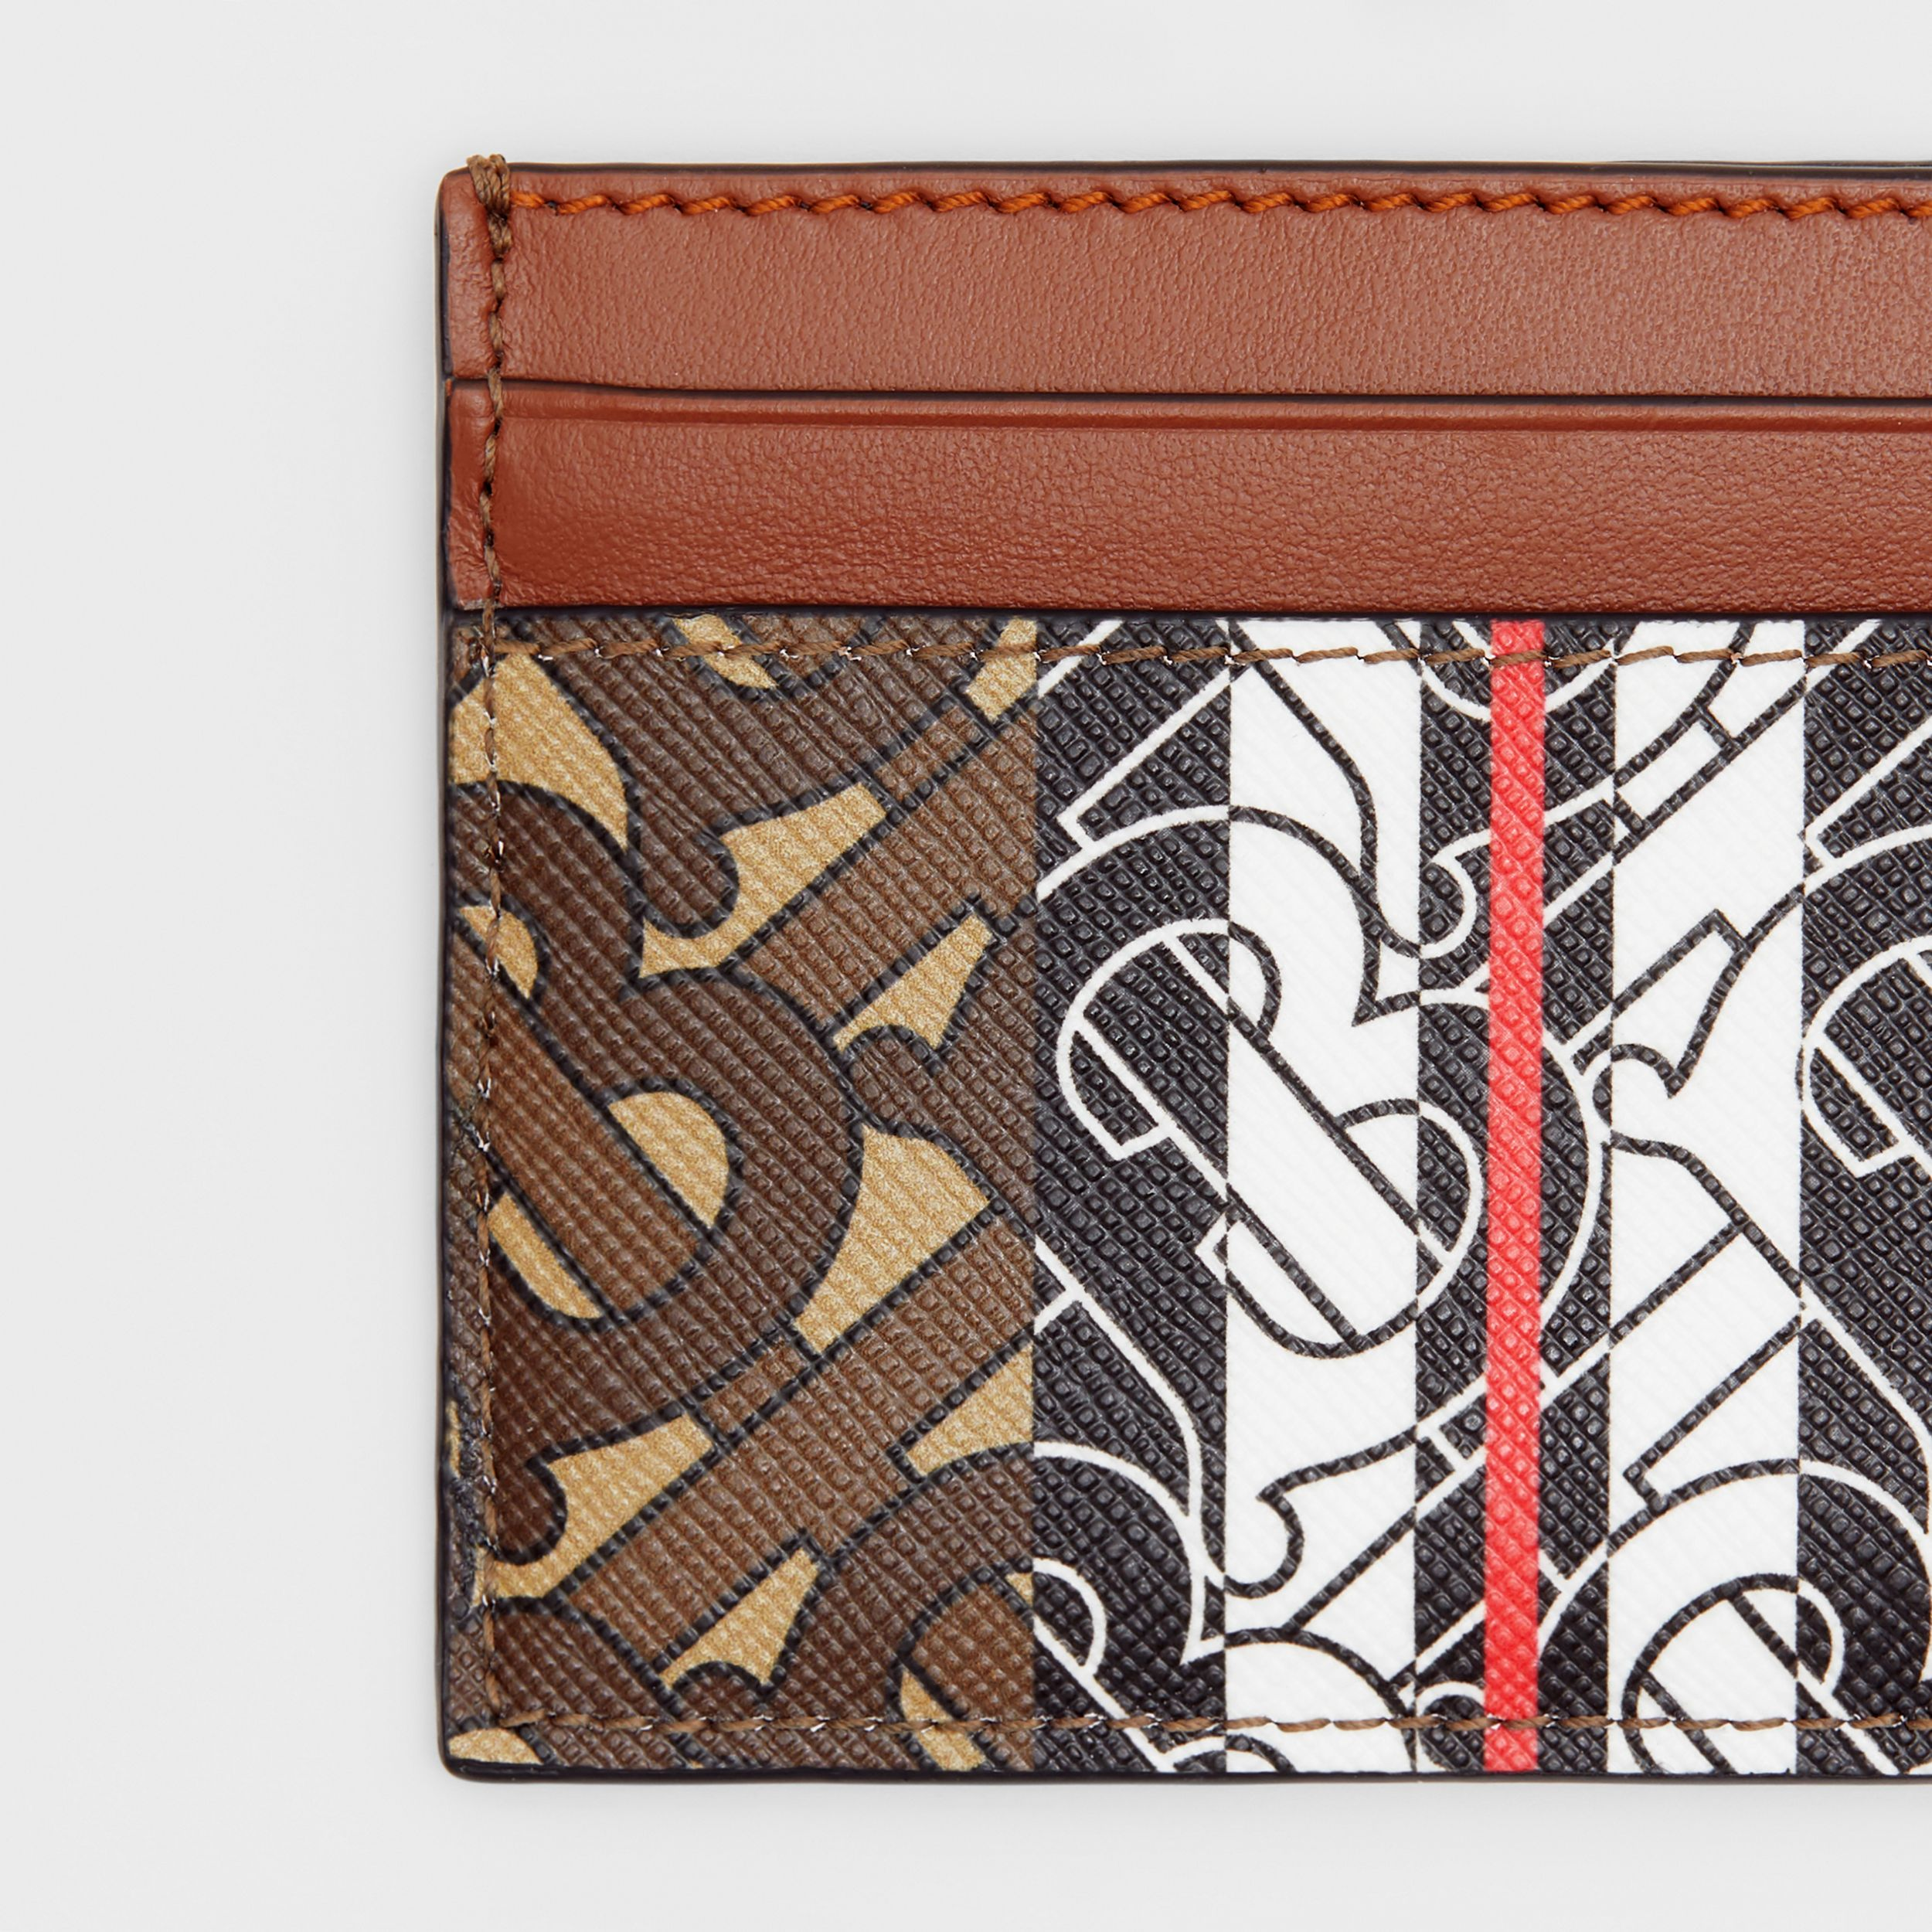 Monogram Stripe E-canvas Card Case in Bridle Brown | Burberry Singapore - 2